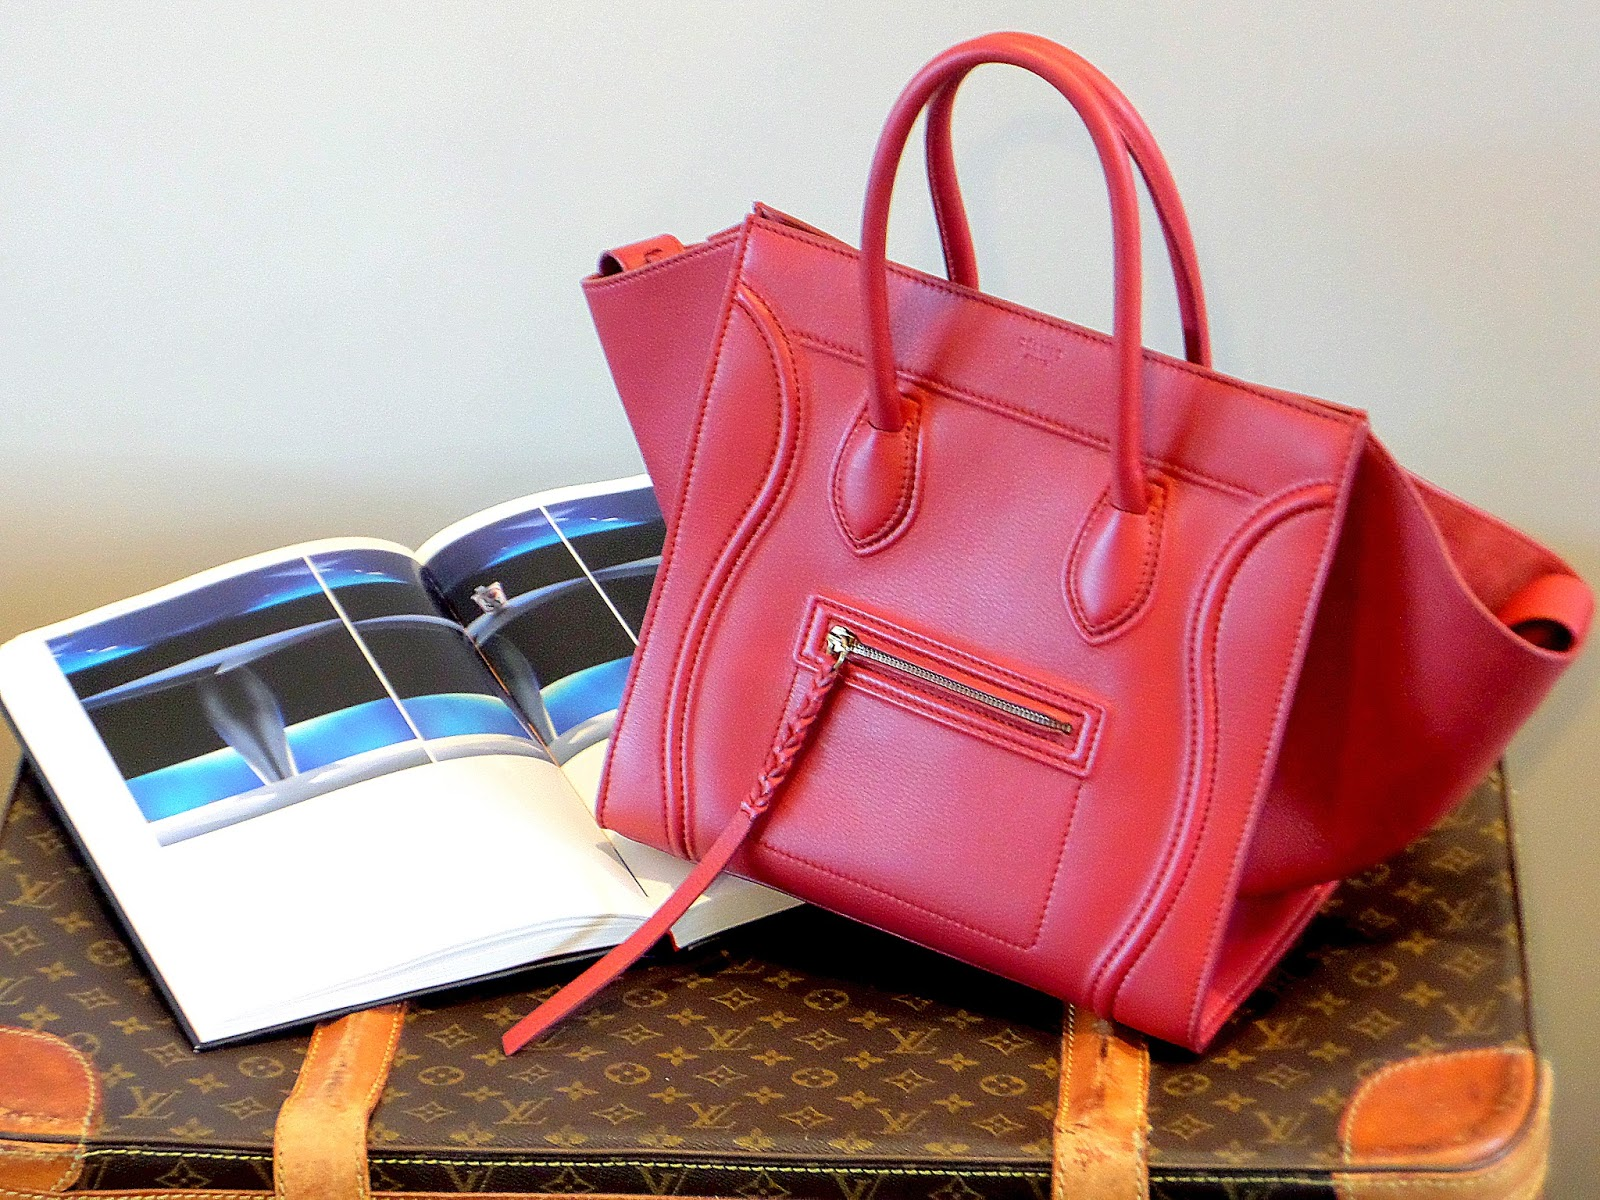 9578f098fb49 Shop Authentic Celine Luggage Phantom Bags ~ Vancouver s leading consignment  store